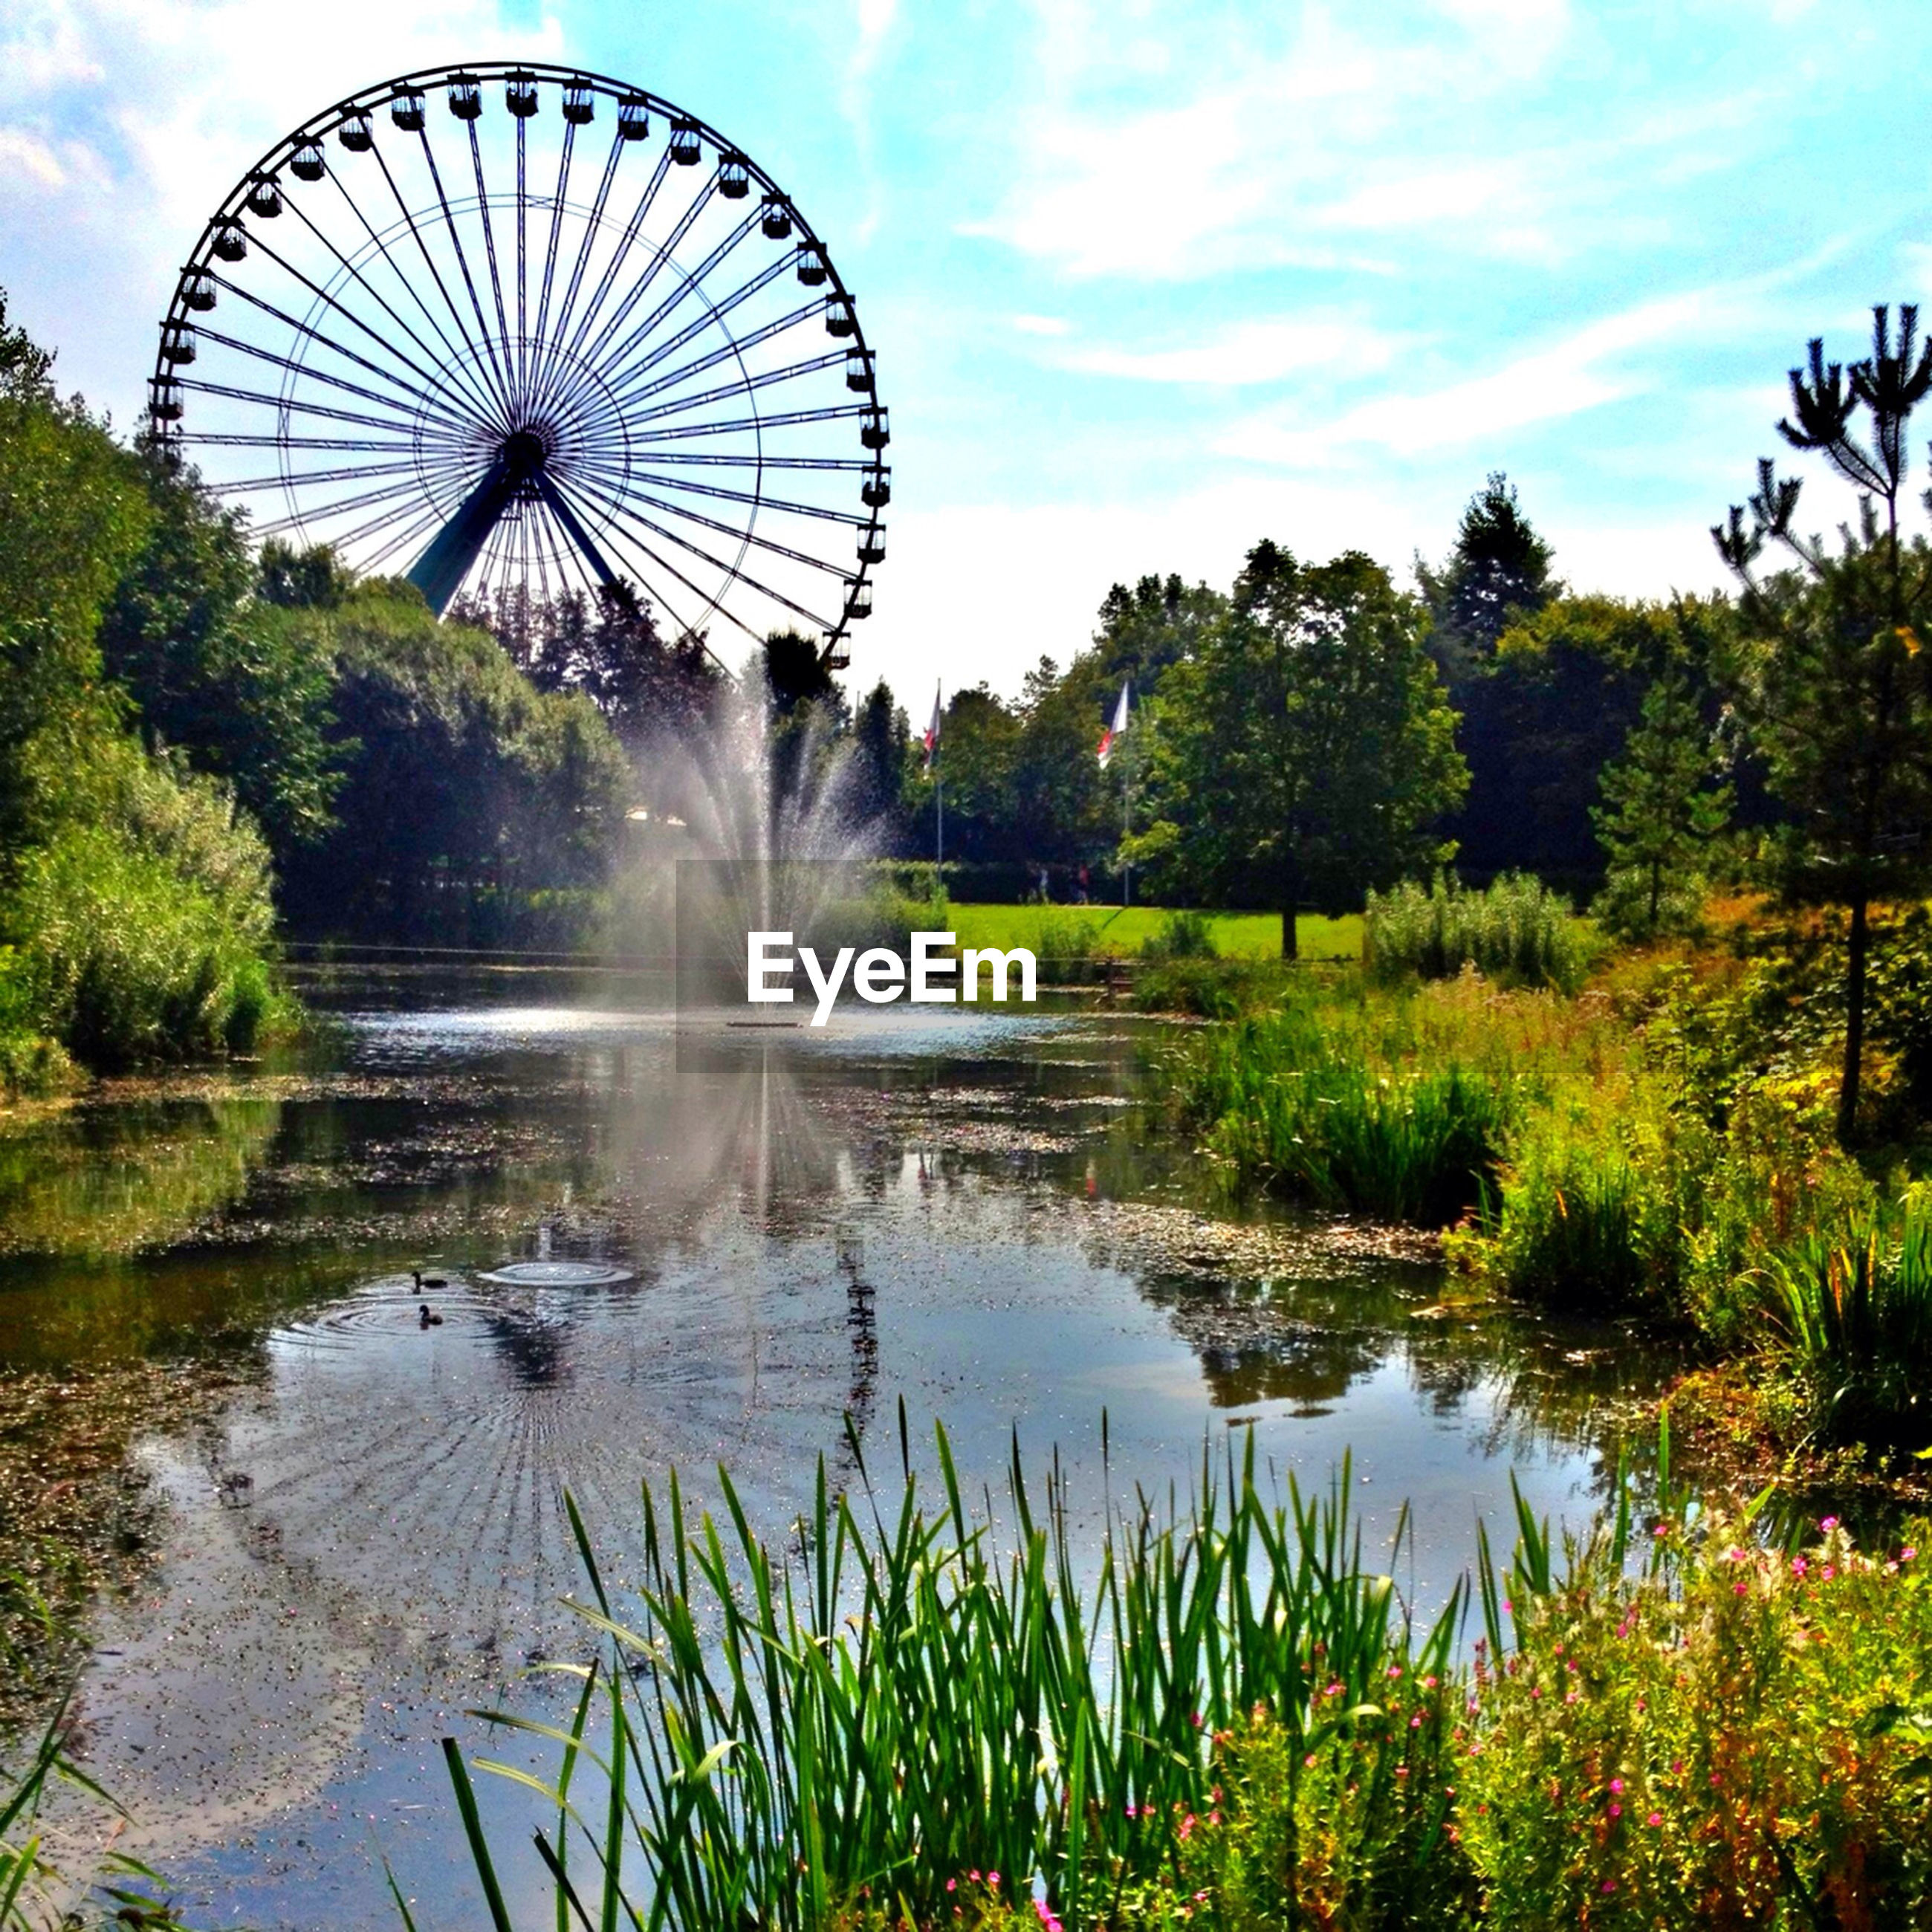 Ferris wheel against sky with lake and plants in foreground